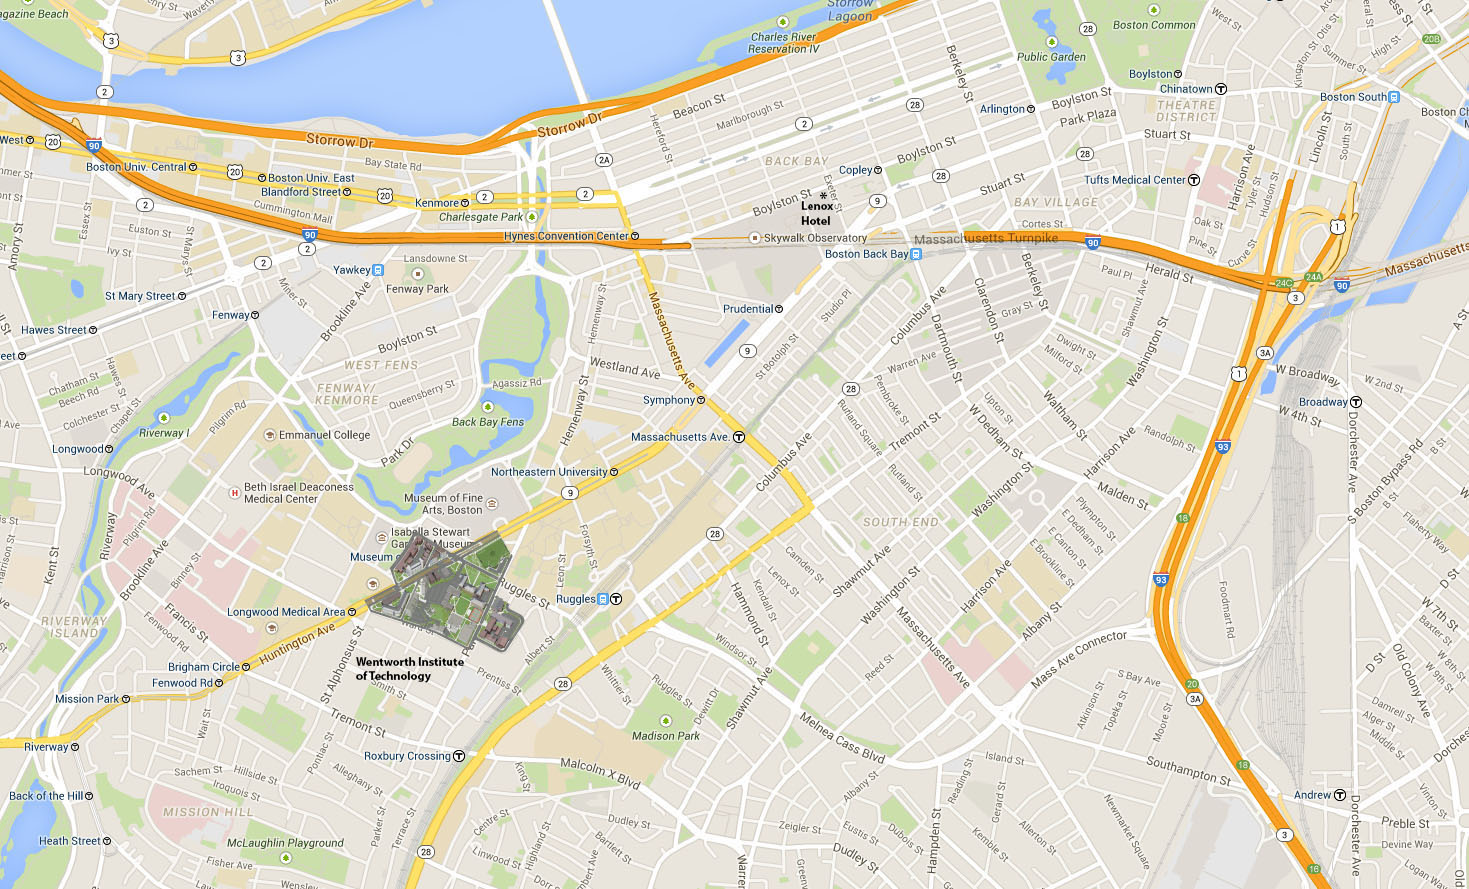 NEH Map of Boston with Hotel and WIT